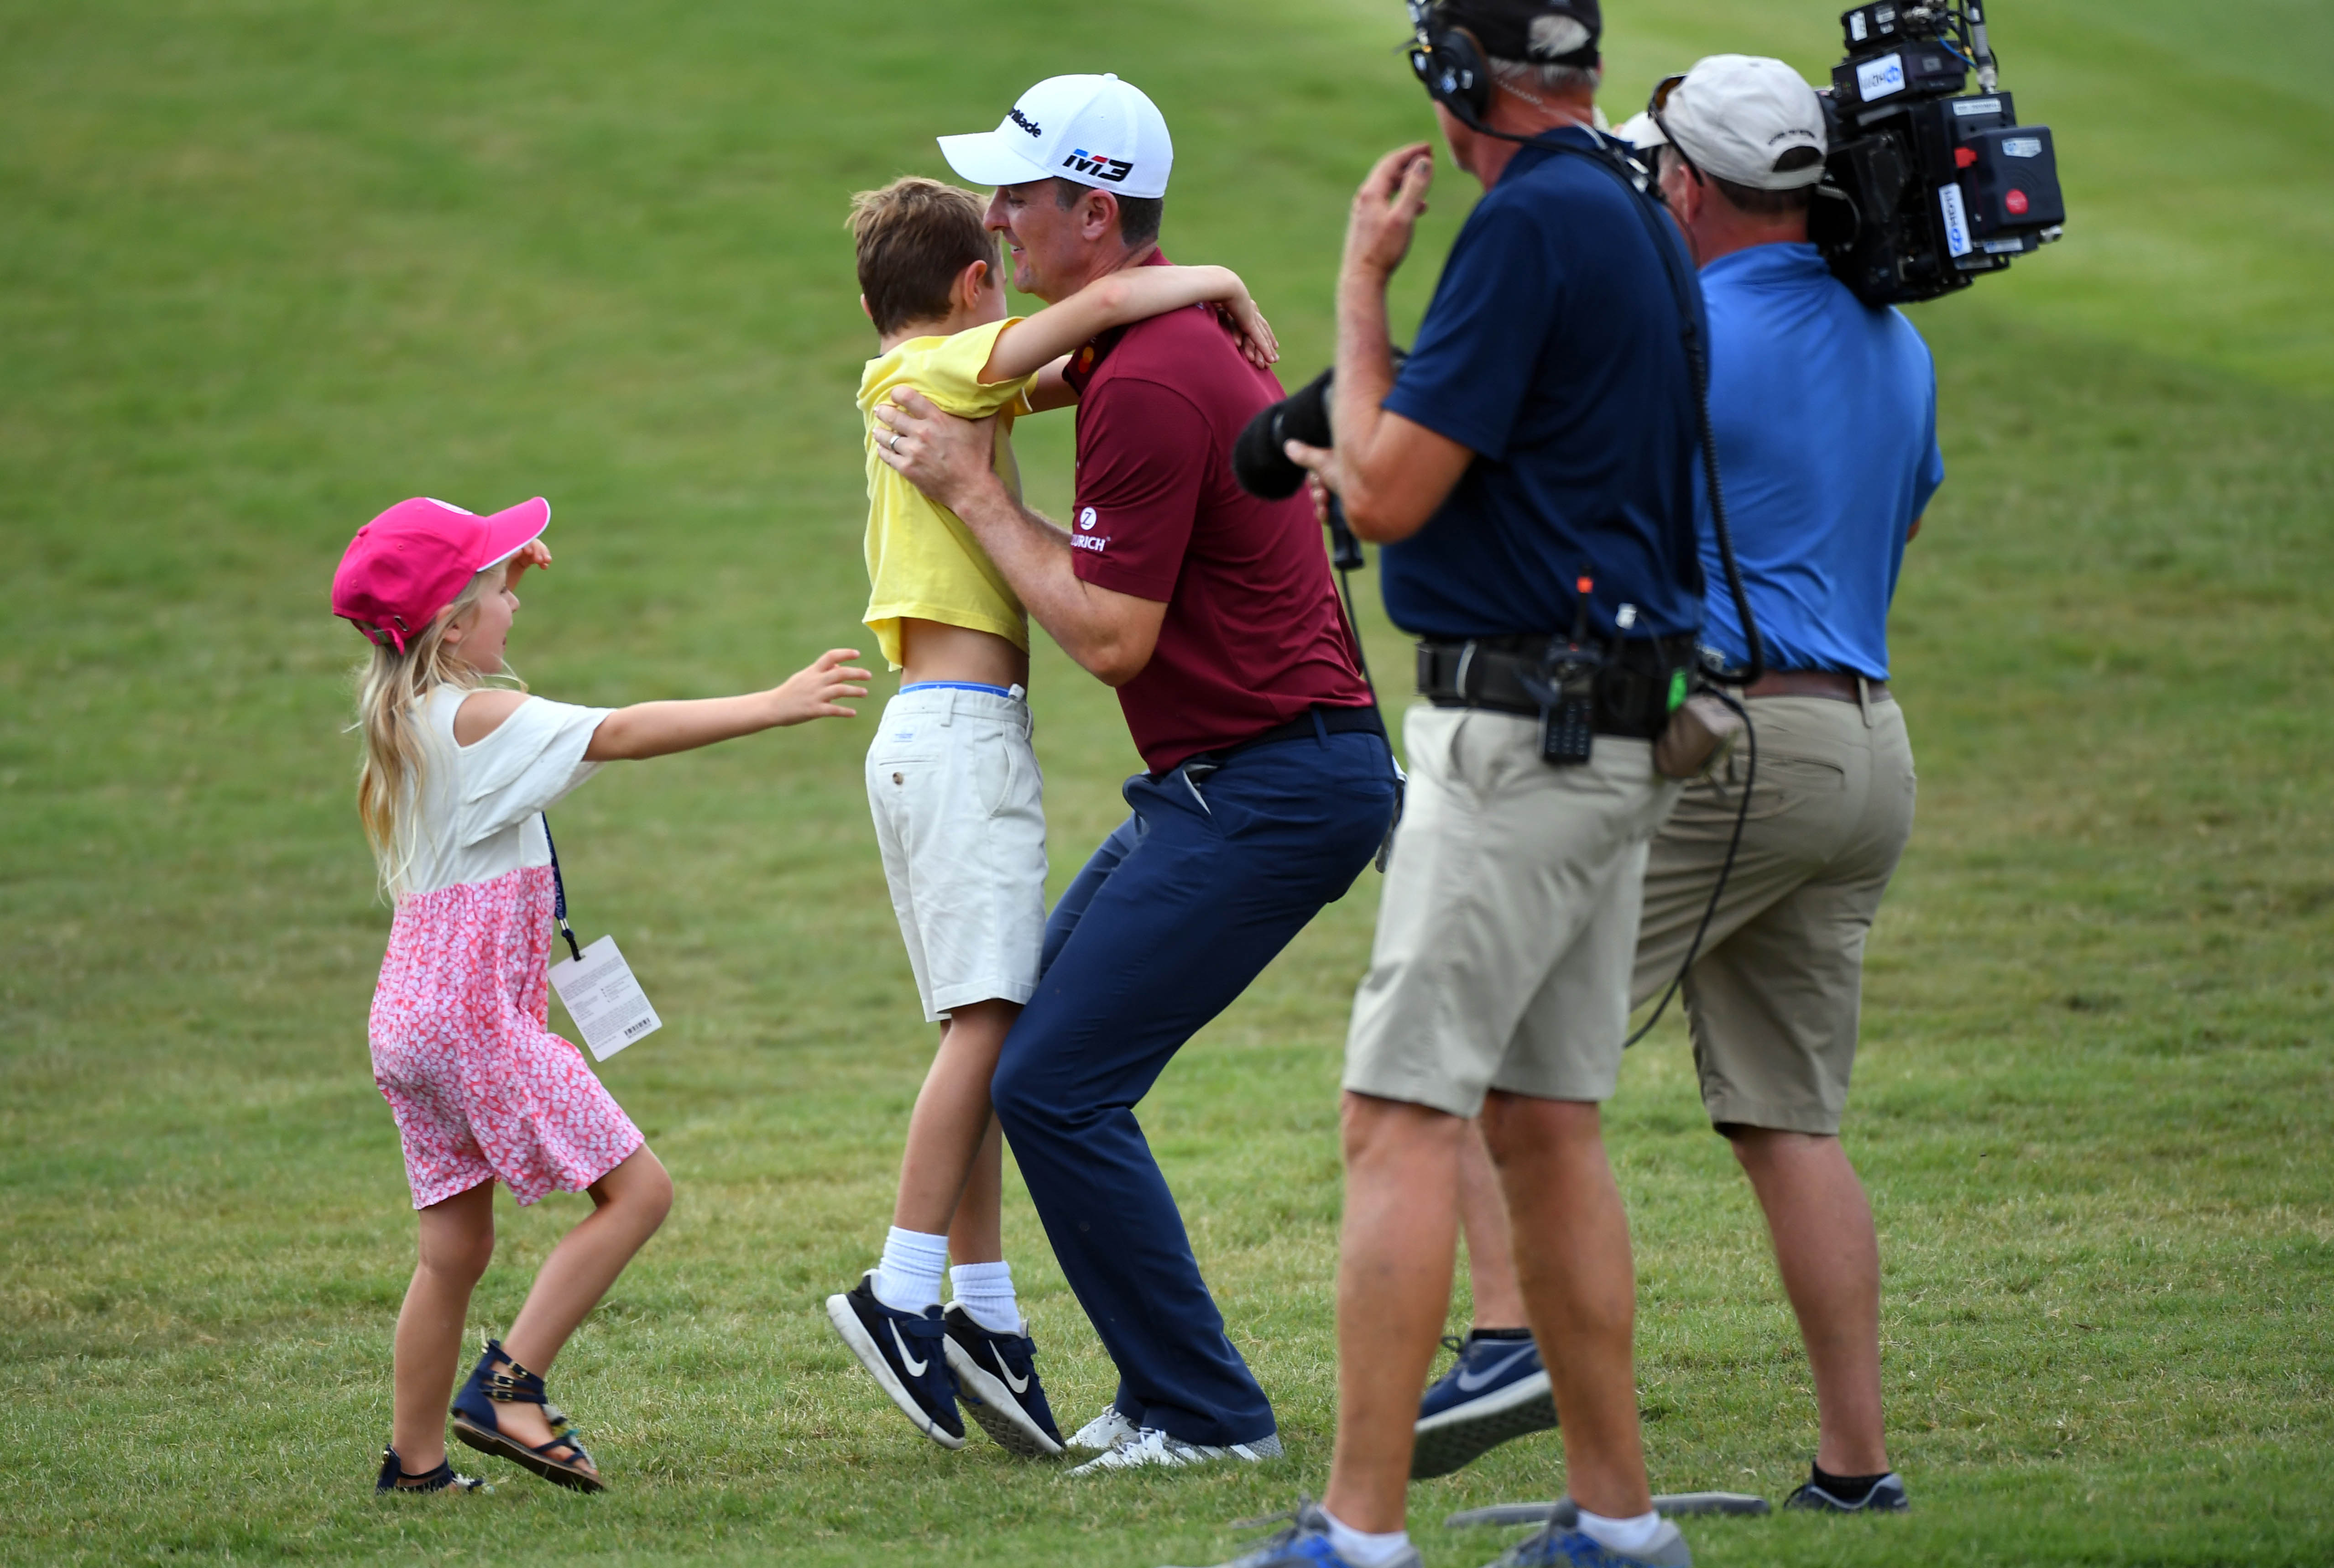 Sep 23, 2018; Atlanta, GA, USA; Justin Rose celebrates with his family after he won the FedEx Cup at the Tour Championship golf tournament at East Lake Golf Club. Mandatory Credit: Christopher Hanewinckel-USA TODAY Sports